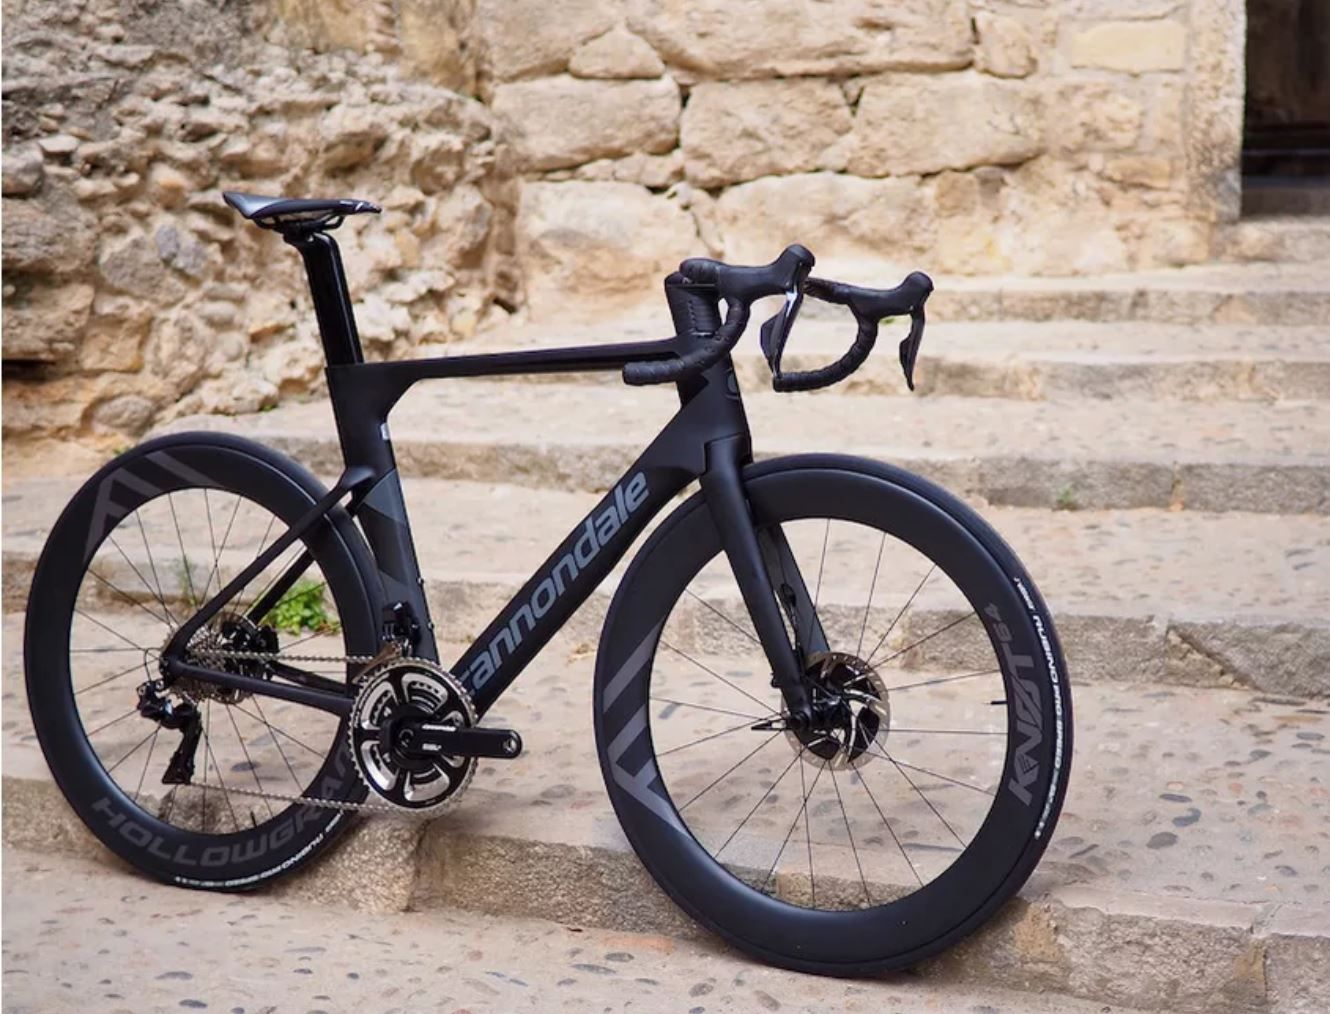 fd3e2e544e6 new cannondale system six Cannondale Bikes, Cycling Weekly, Road Bikes,  Mtb, Biking